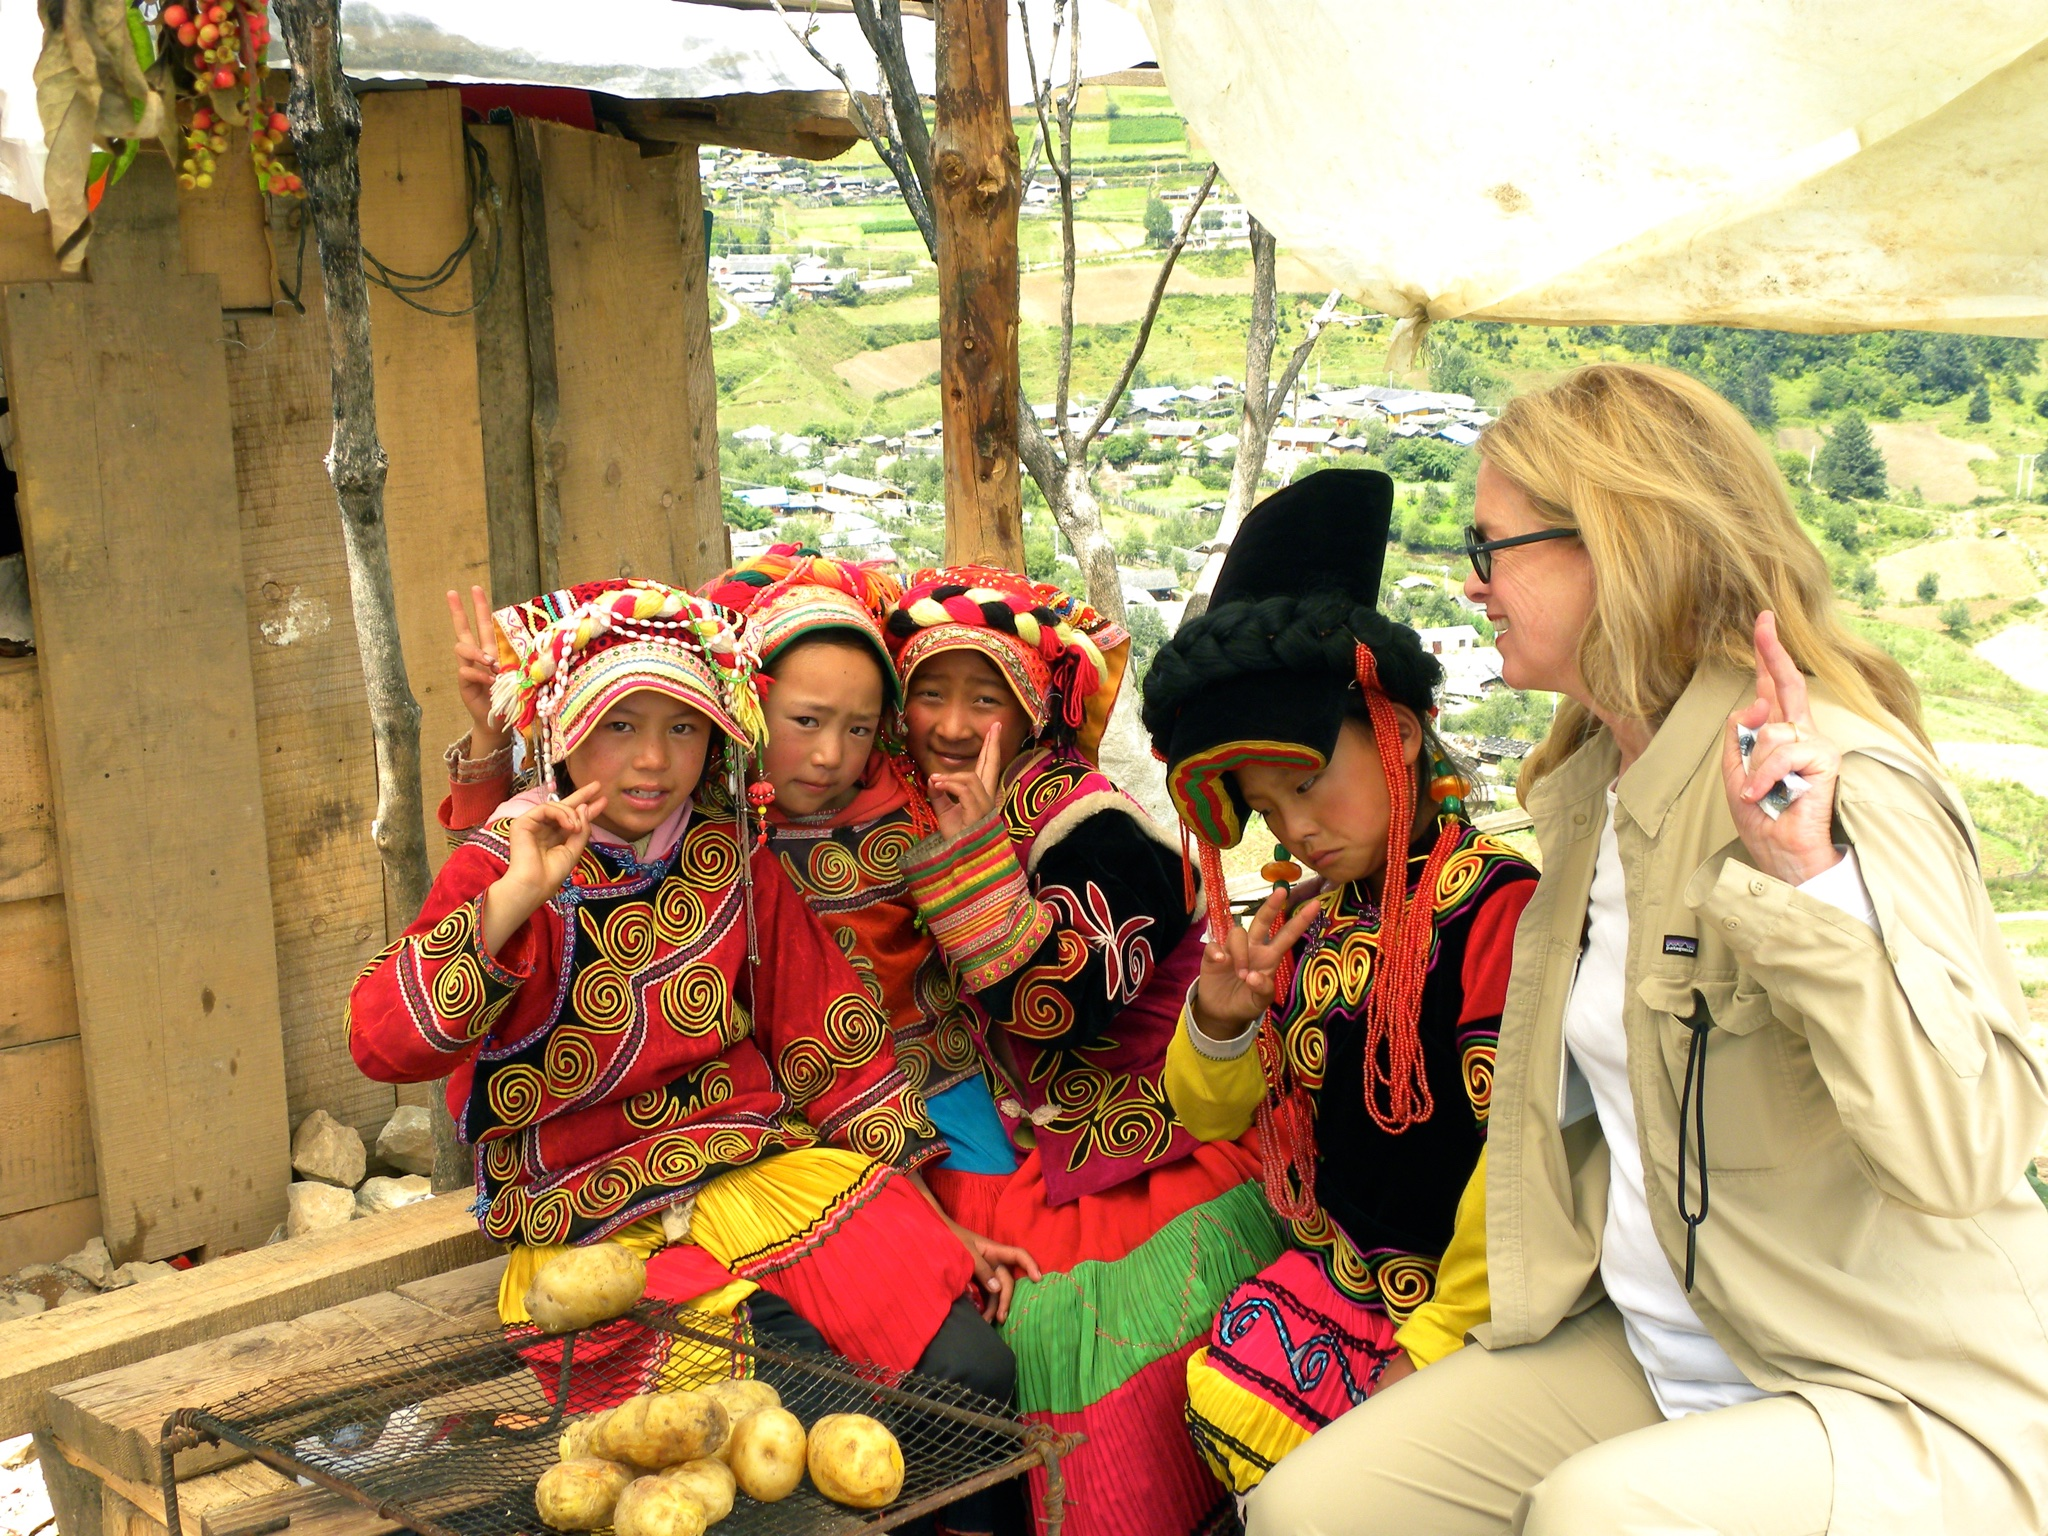 Jo with kids, Tibetan area of China